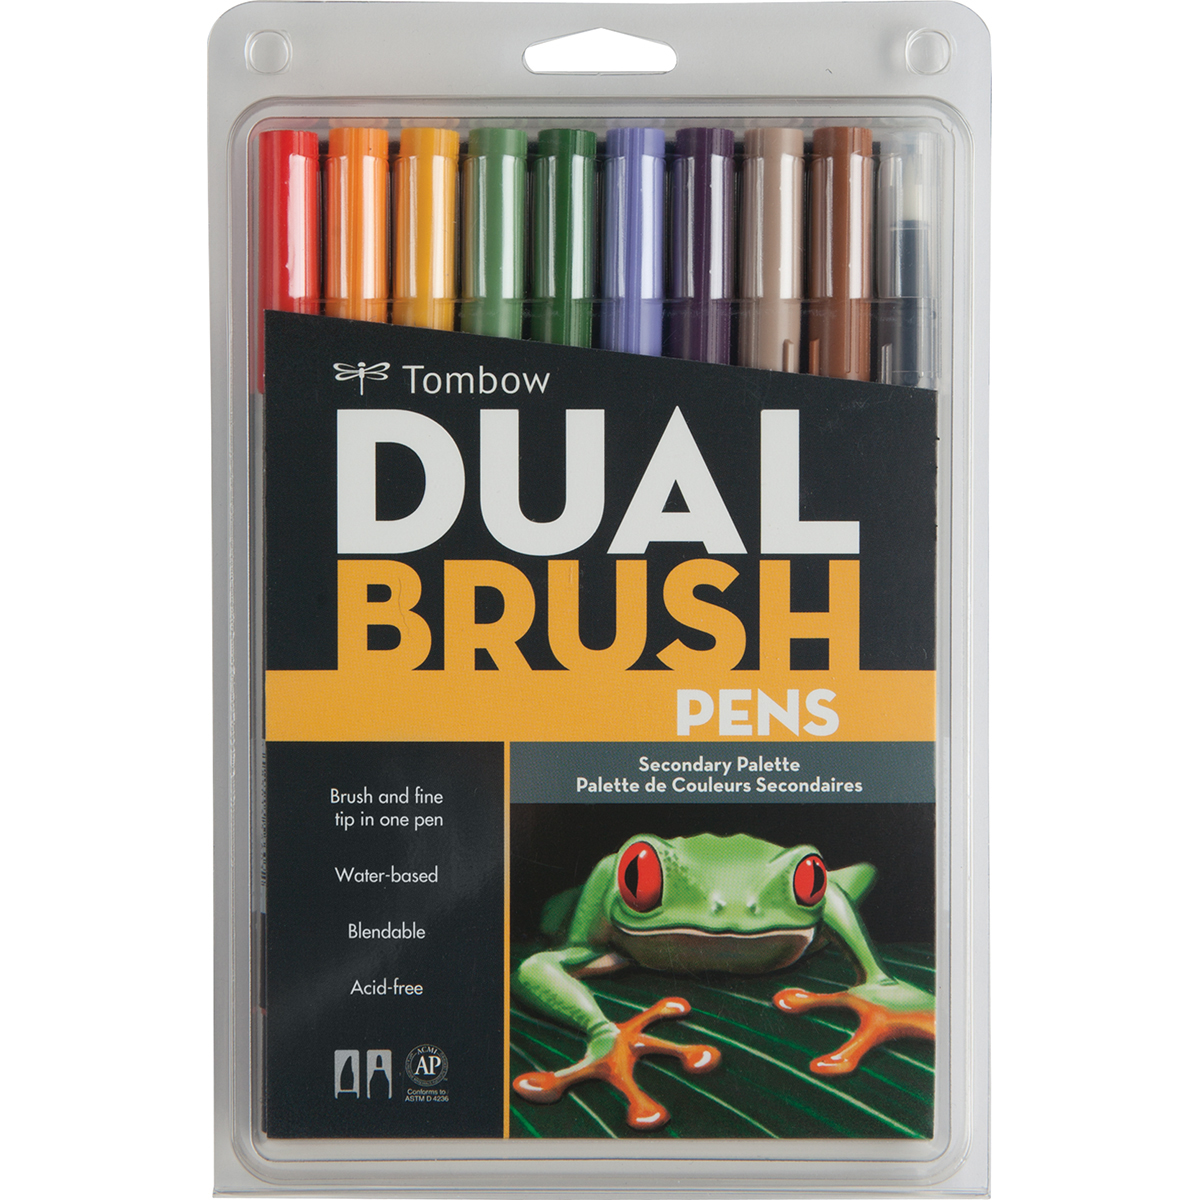 Tombow Dual Brush Secondary Palette